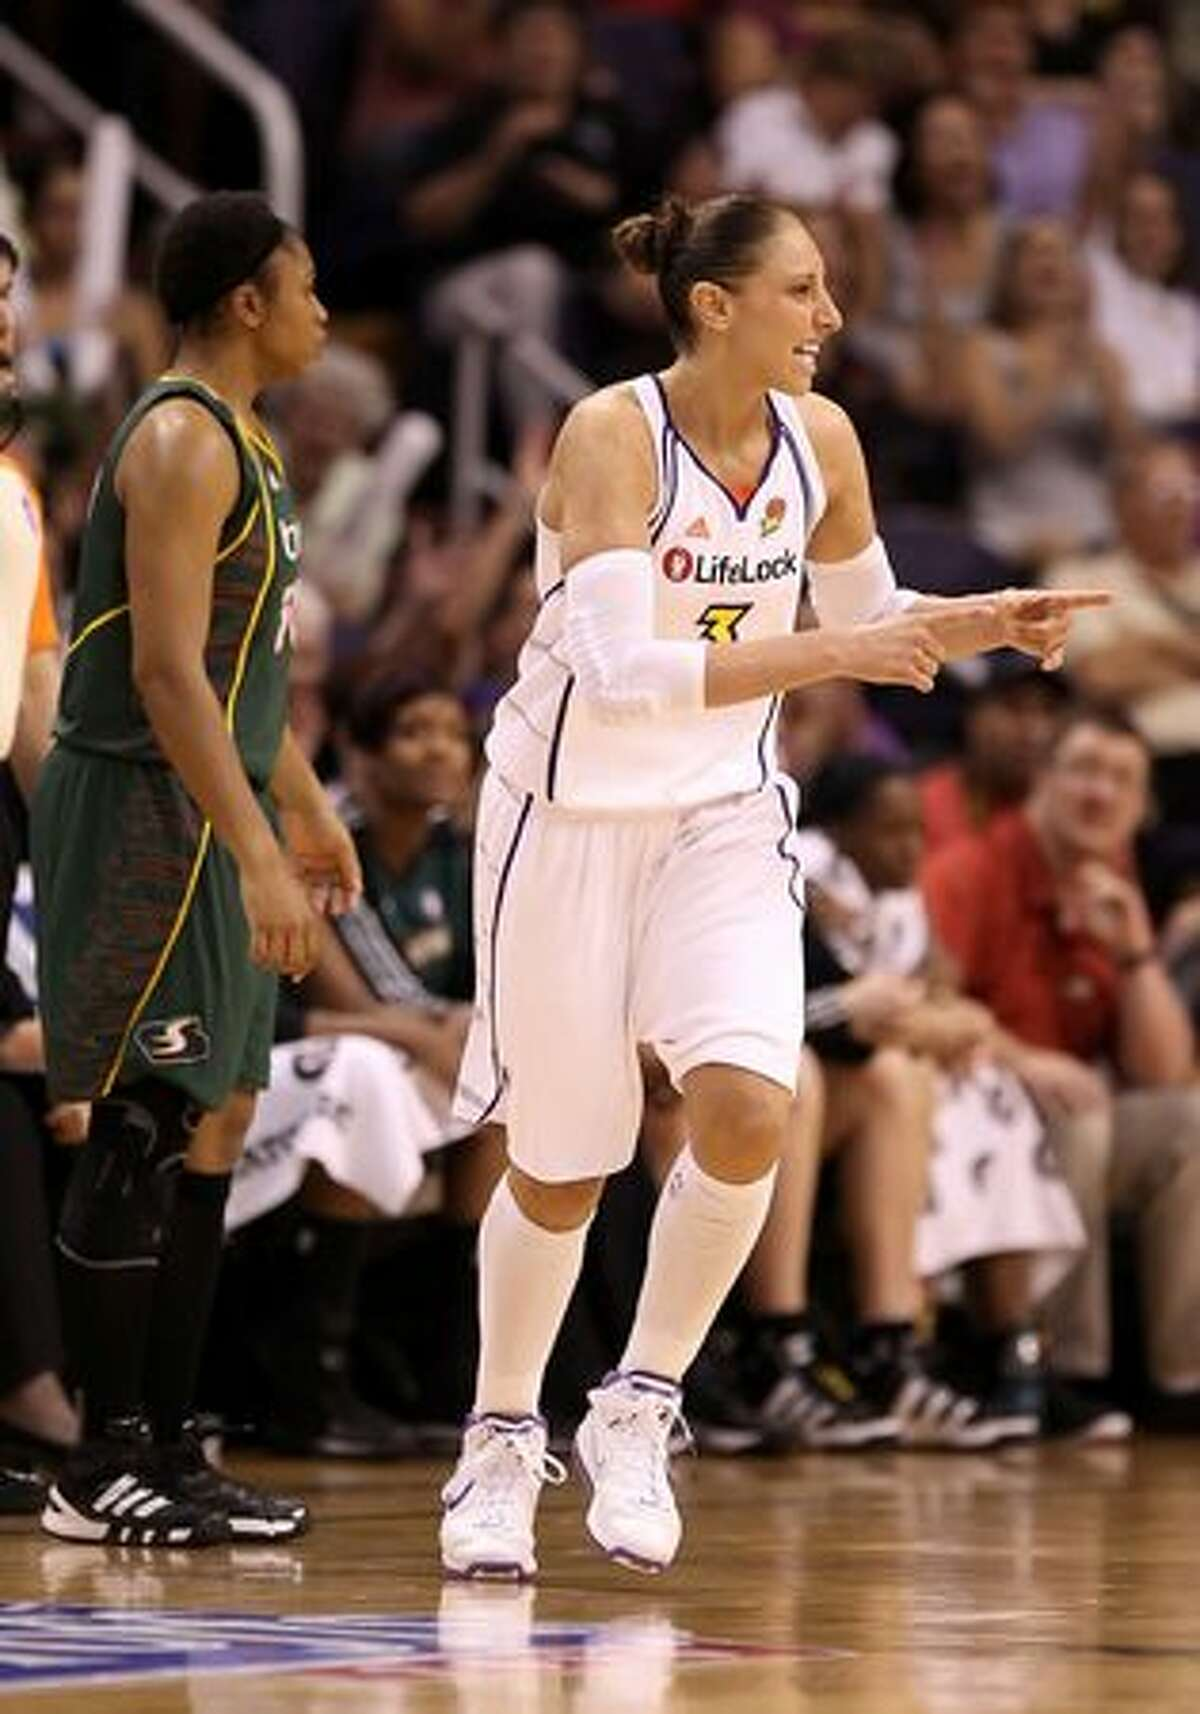 Diana Taurasi #3 of the Phoenix Mercury celebrates after hitting a three point shot against the Seattle Storm.